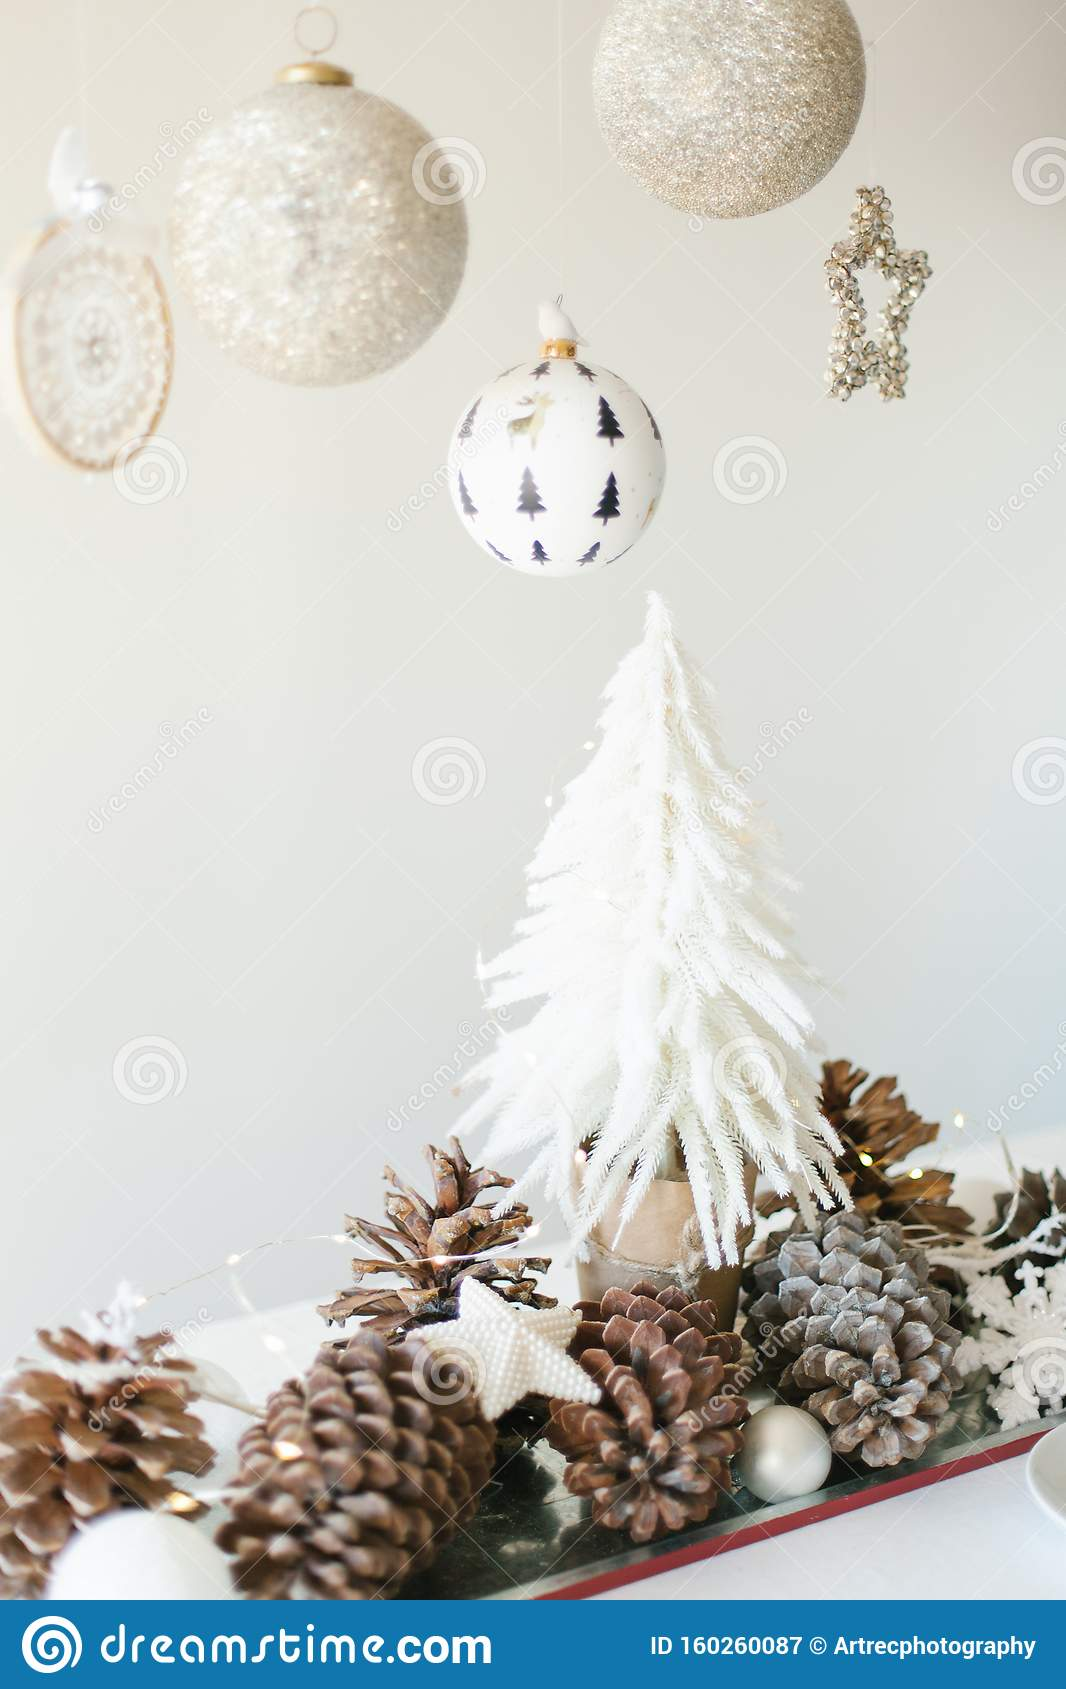 Winter Table Decoration With Mini Christmas Tree Pine Cones And Toys Stock Image Image Of Chirstmas Dinner 160260087